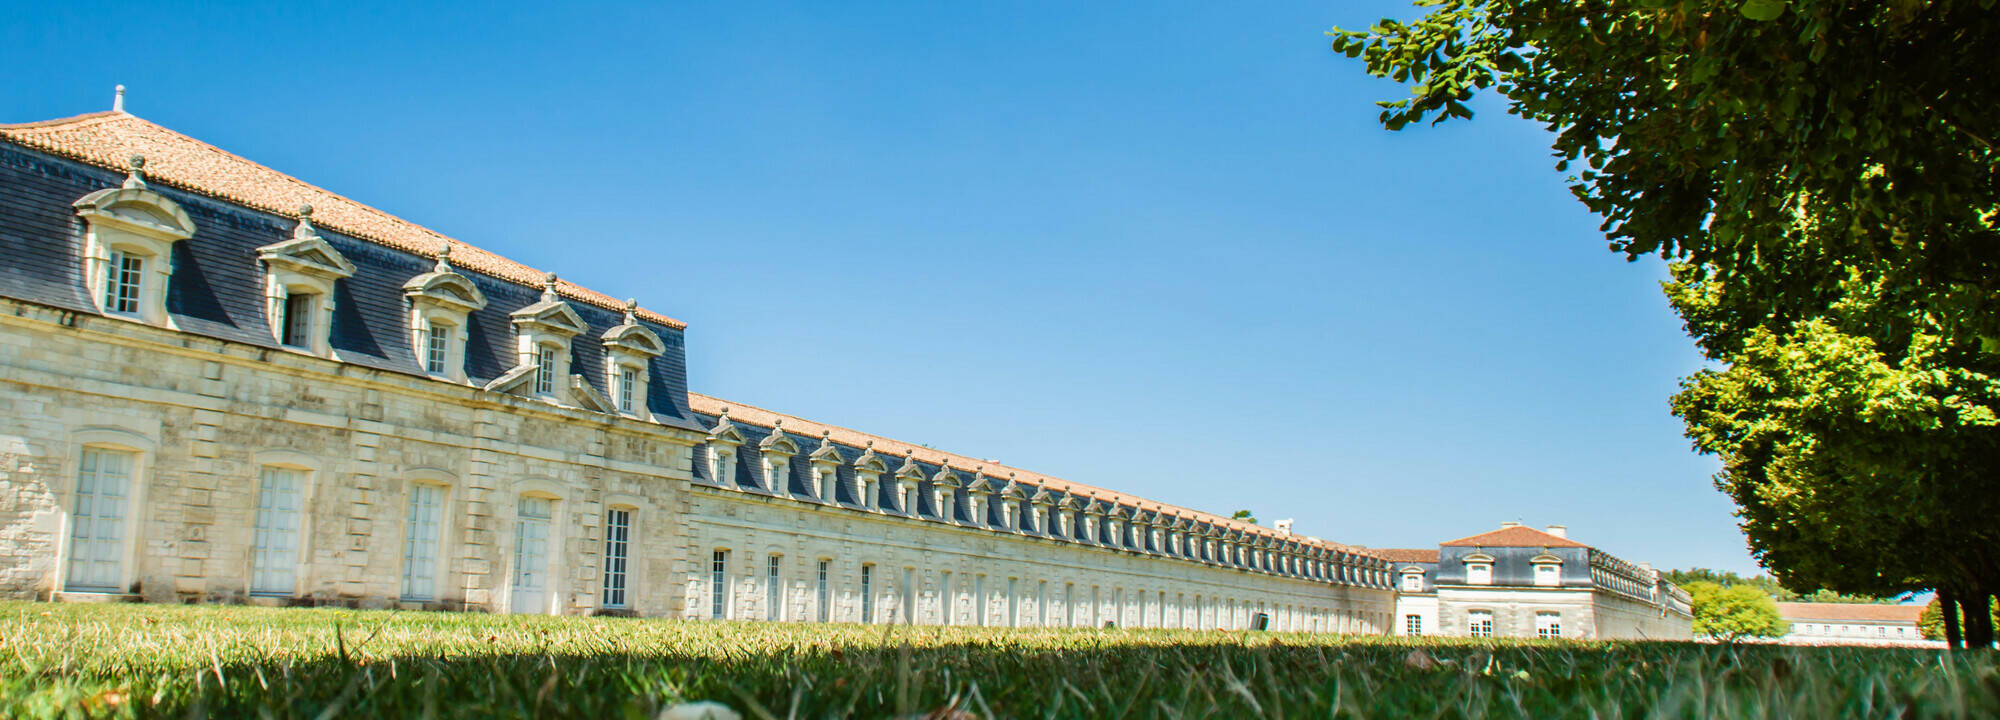 The Corderie Royale Of Rochefort A Rope Making Factory